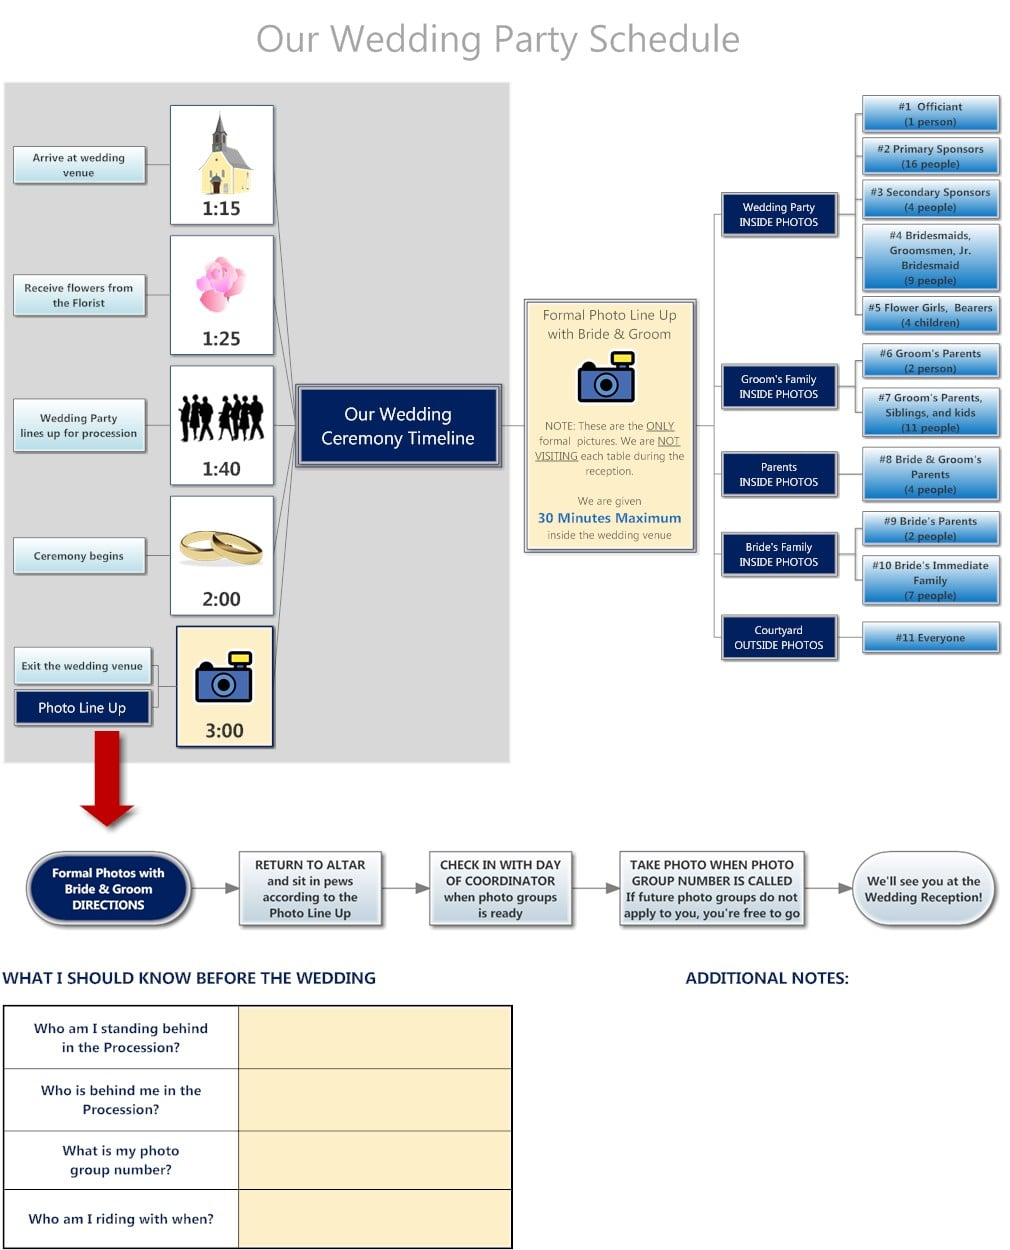 use the flowchart template to clearly articulate the steps or process of the ceremony and photo shoot explore smartdraws easy to use flowchart template - Review Smartdraw